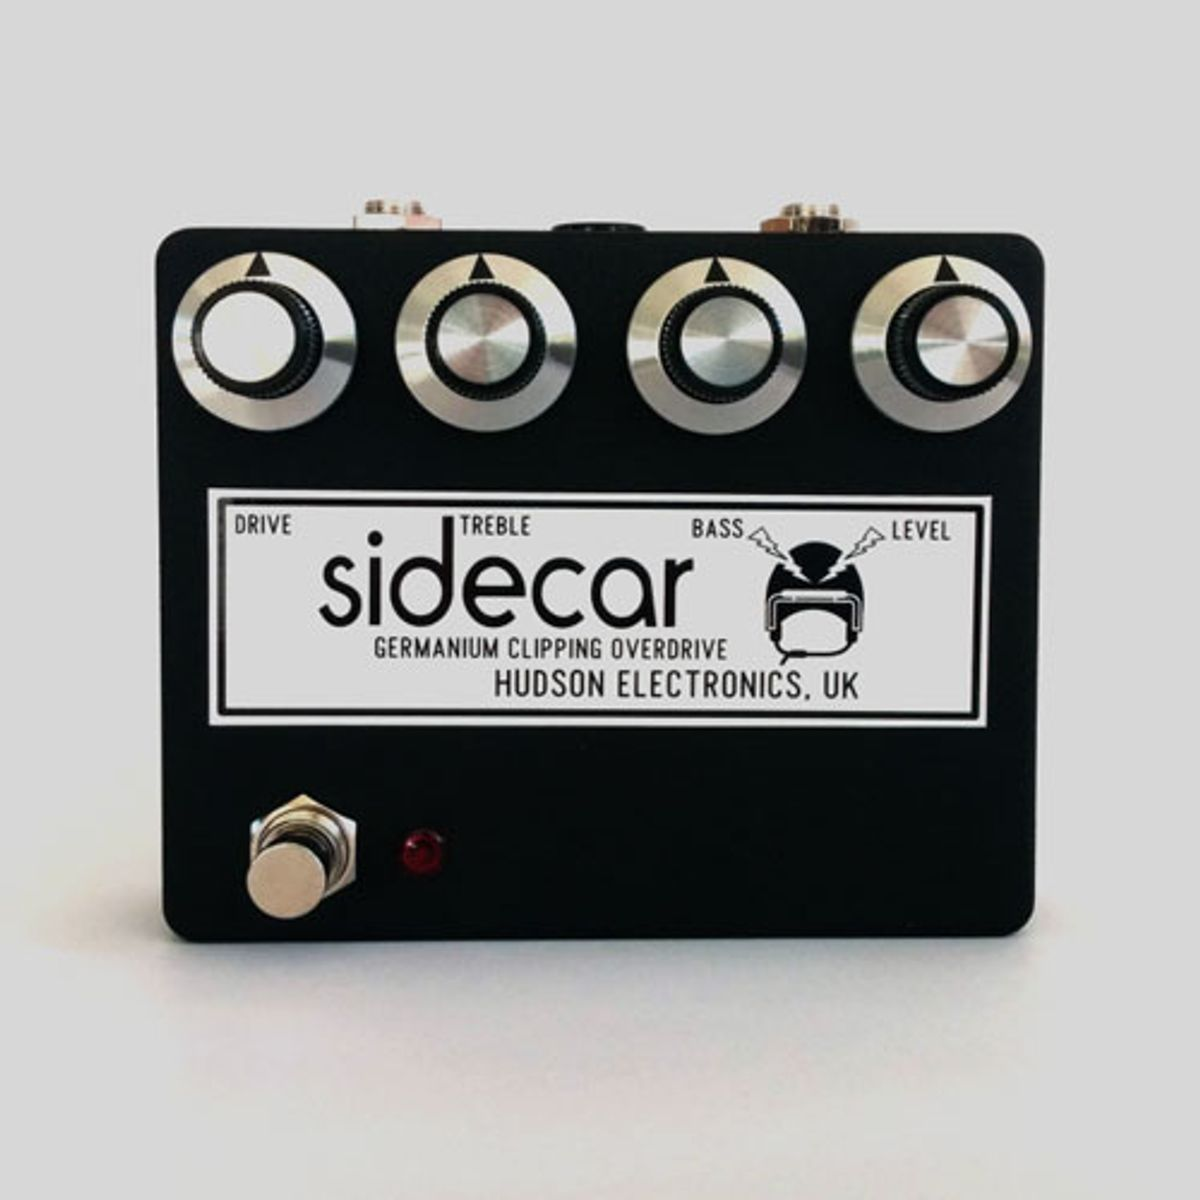 Hudson Electronics Introduces the Sidecar